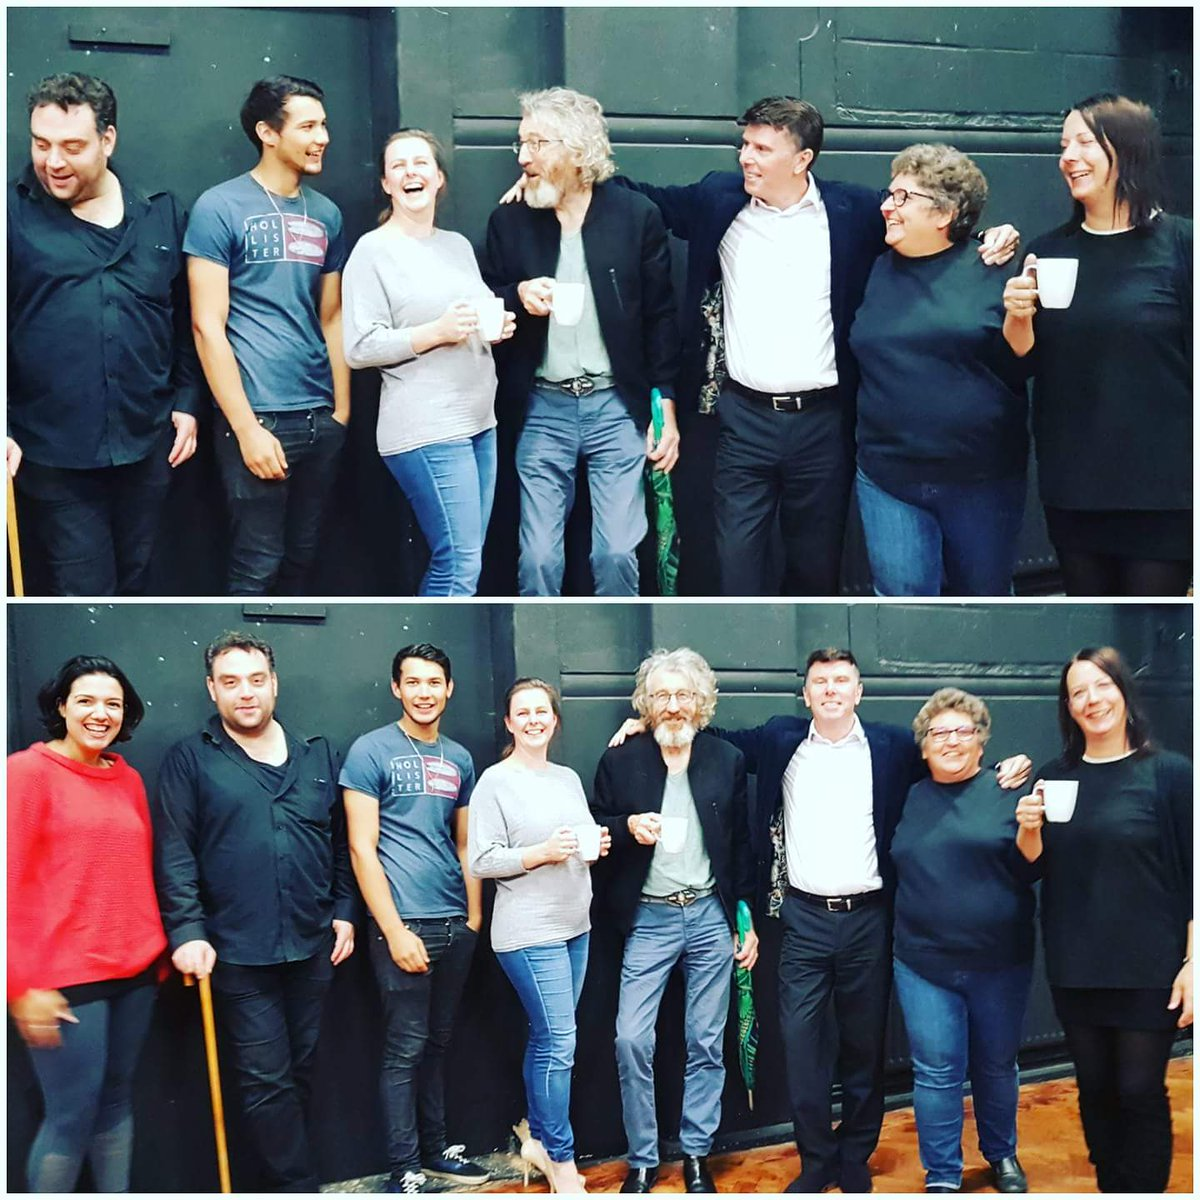 RT @H_A_T18 Another day of #rehearsals ahead for the motley crew of #HonourAmongstThieves. Come see the result @cornerHOUSEarts in just five weeks time. #Theatre #NewPlay #NewWriting #actors #acting #ActorsLife #WhatsOnStage #Surbiton #Kingston #London.